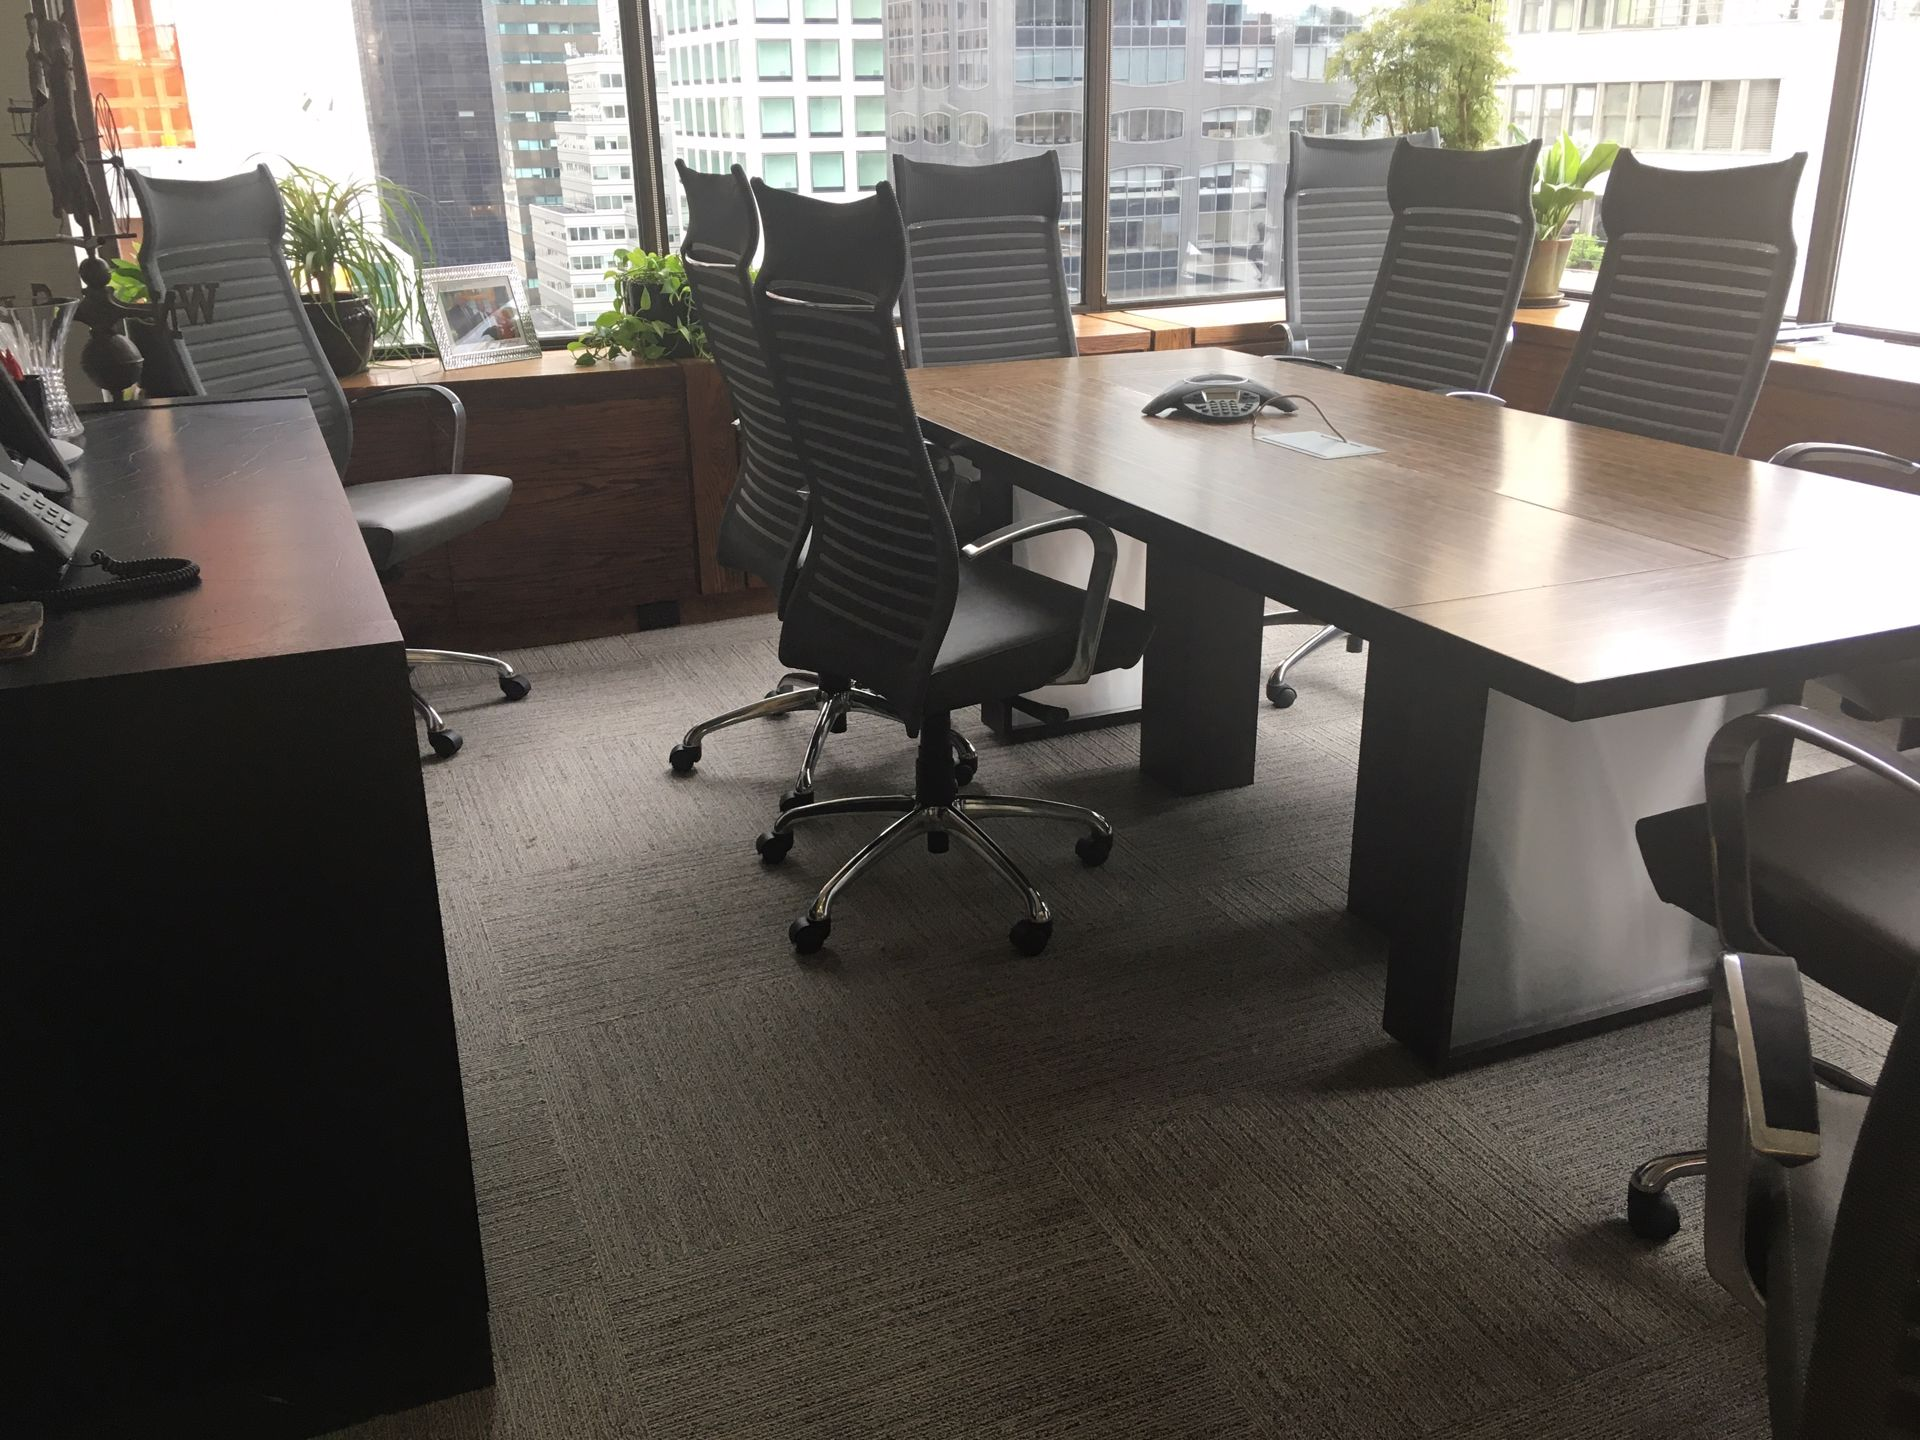 Modern Style Office Furniture Your Way 90 Degree Office